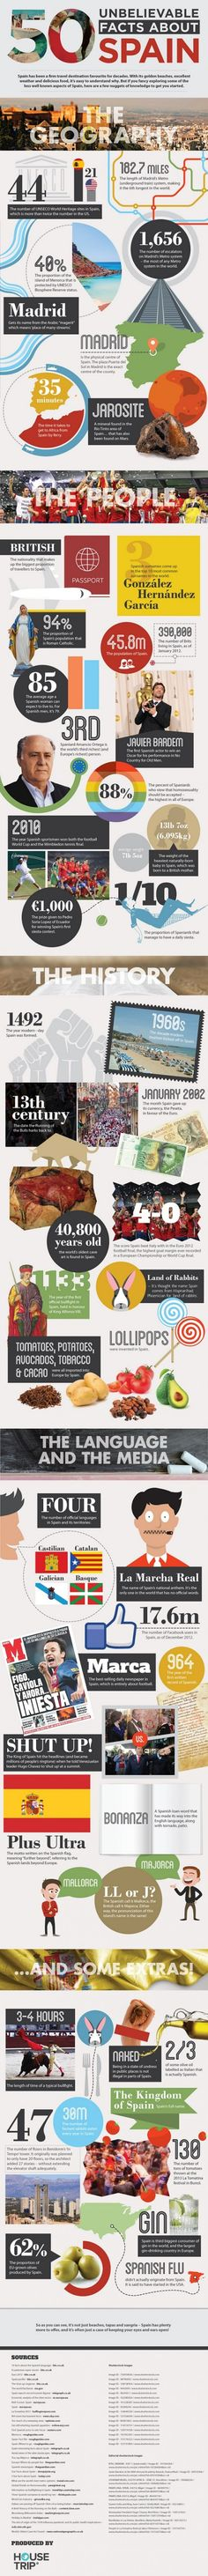 50 Unbelieveable Facts about Spain